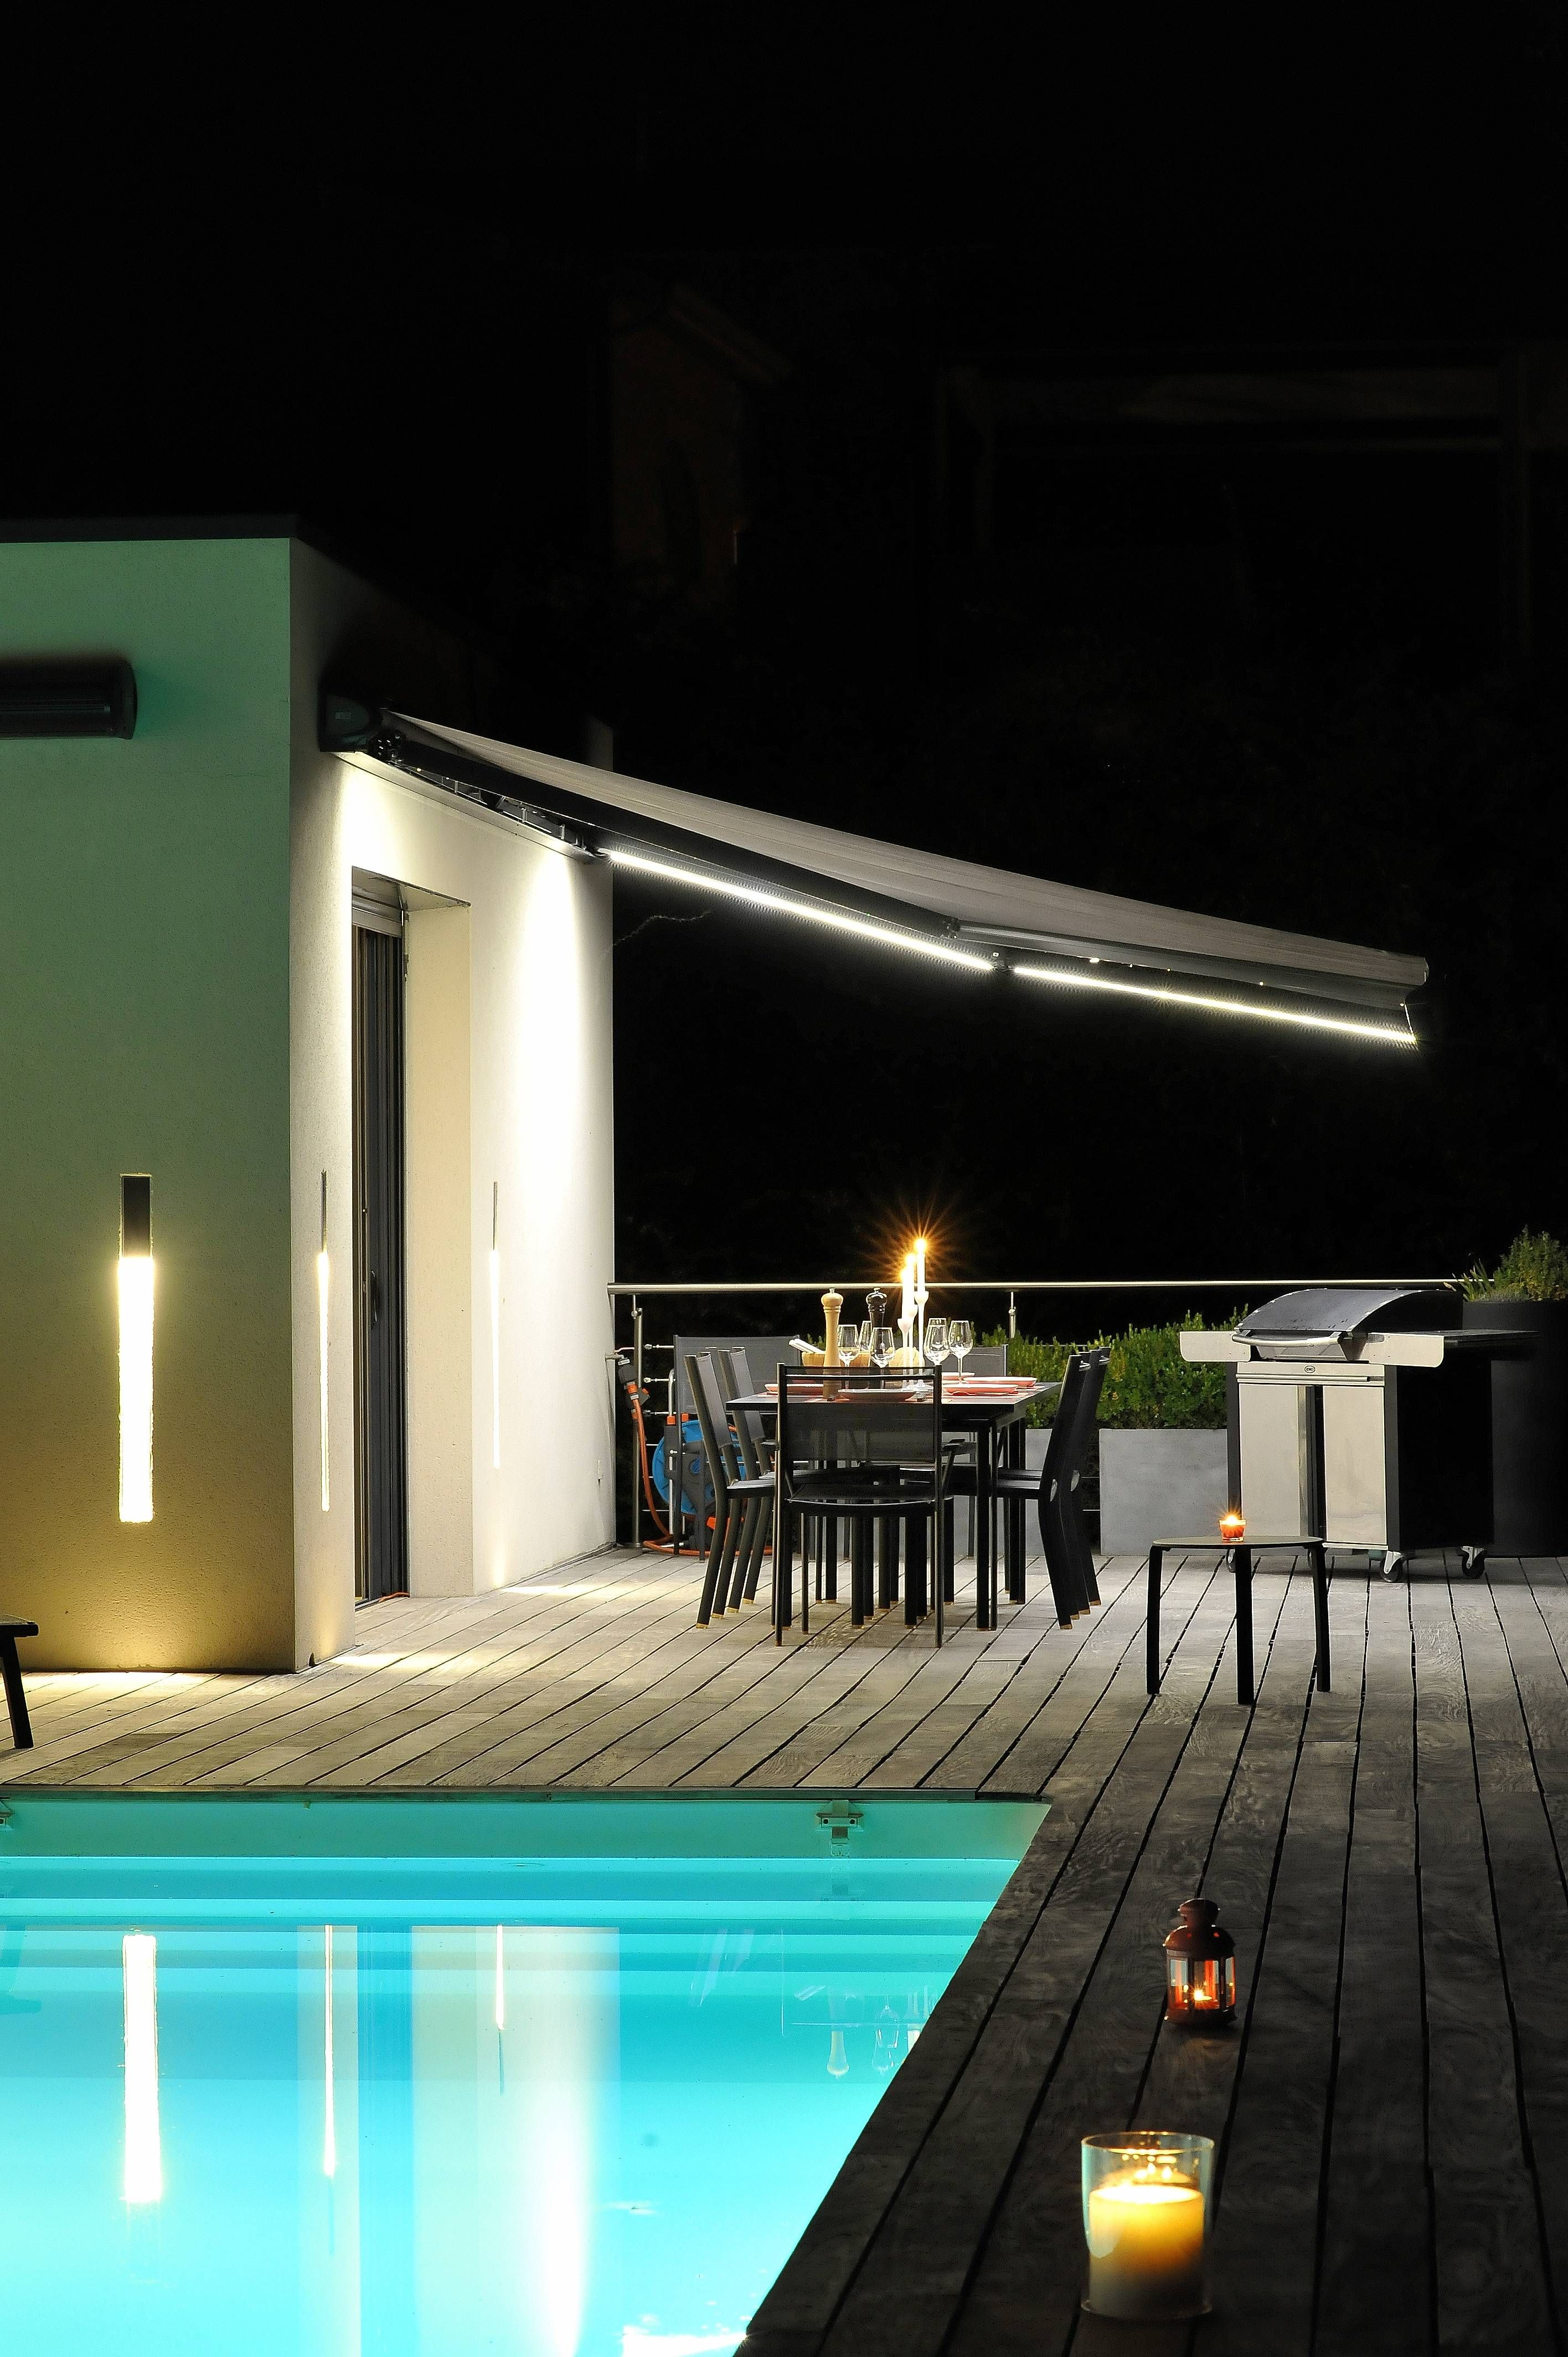 Eclairage Led Terrasse Store Pour Terrasse Avec éclairage Led Outdoor By Night